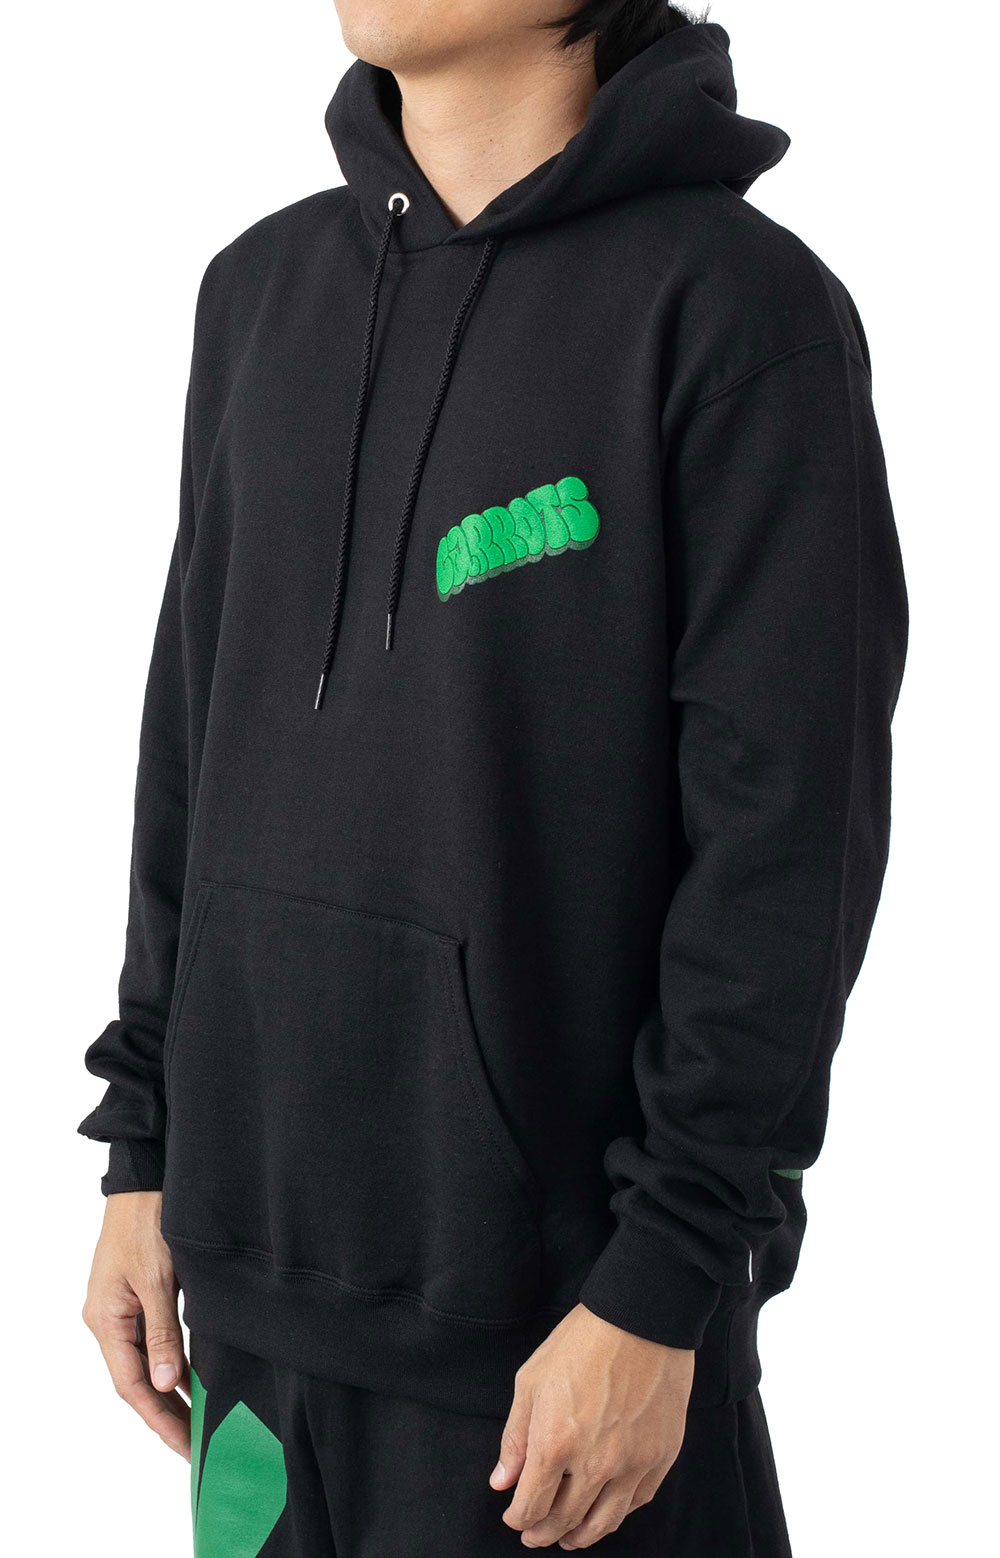 Hit Up Champion Pullover Hoodie - Black  2